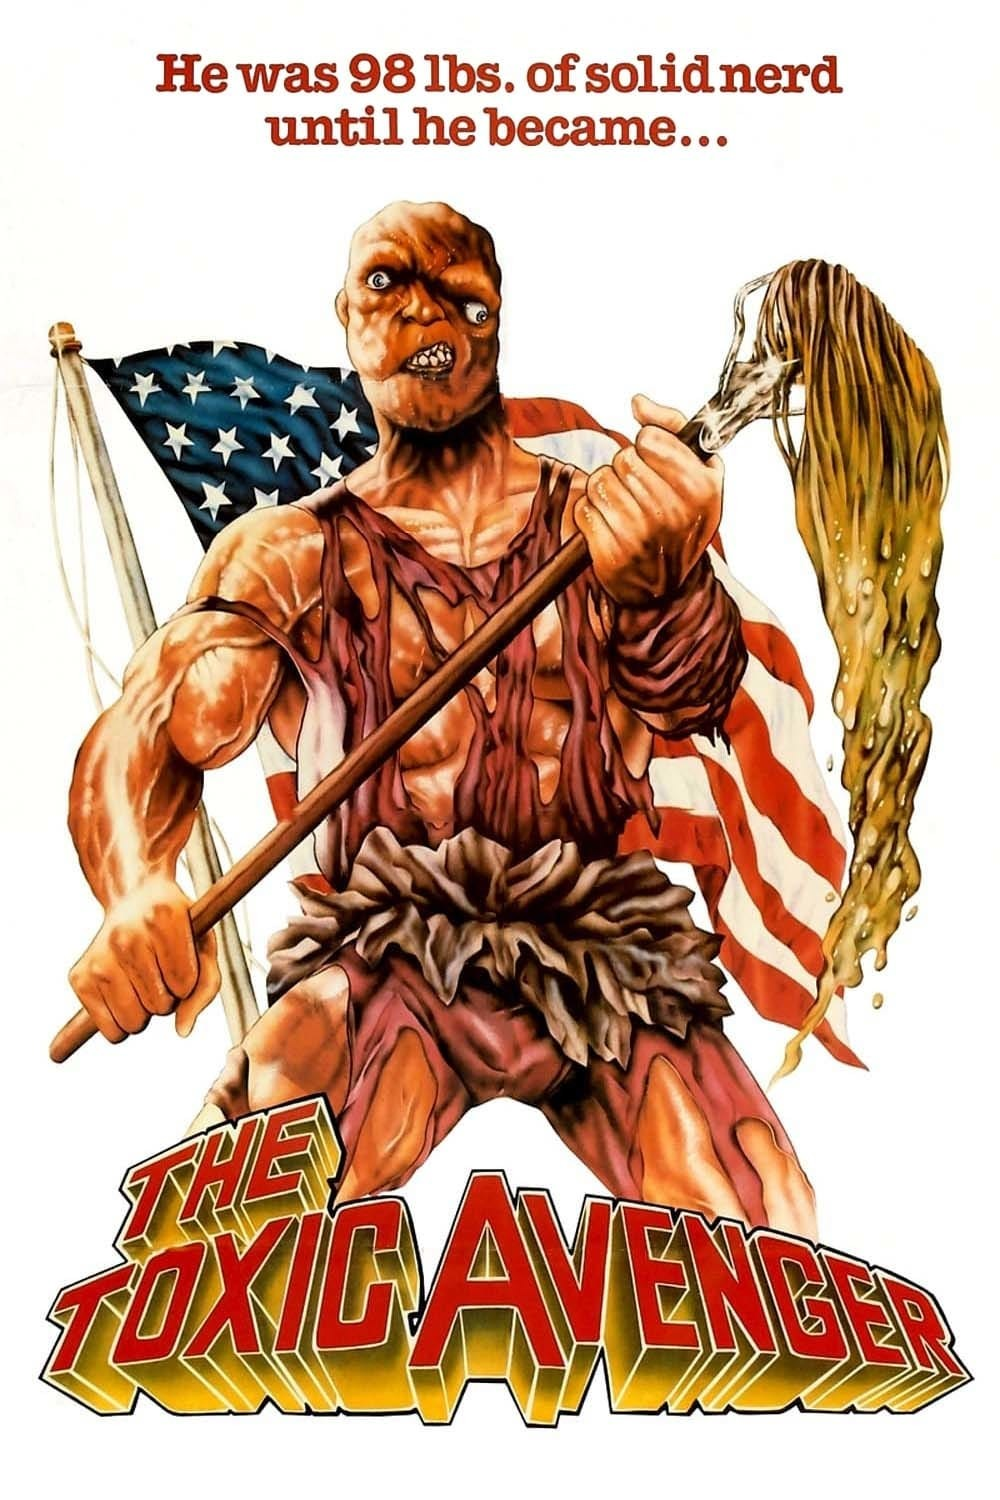 Watch The Toxic Avenger (1984) Free Online